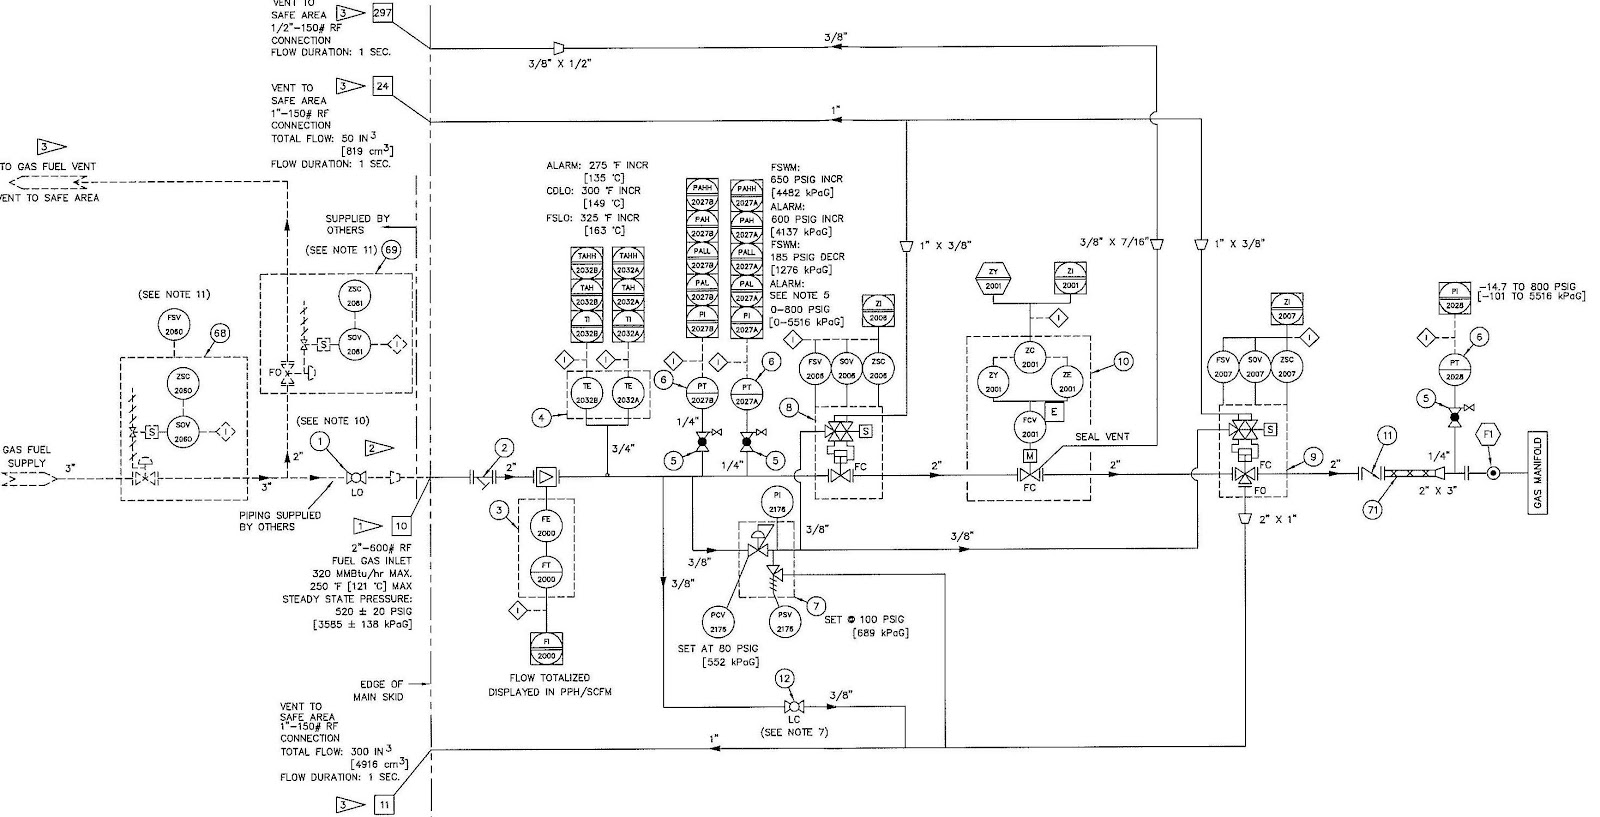 1938 50 furthermore 94 Lt1 T Coolant Line How Get Rid 700190 besides Transmission Sensor Identification T407832 moreover Truck Headers likewise Fuse Box Chevrolet Zr2 2003 Diagram. on tbi y pipe